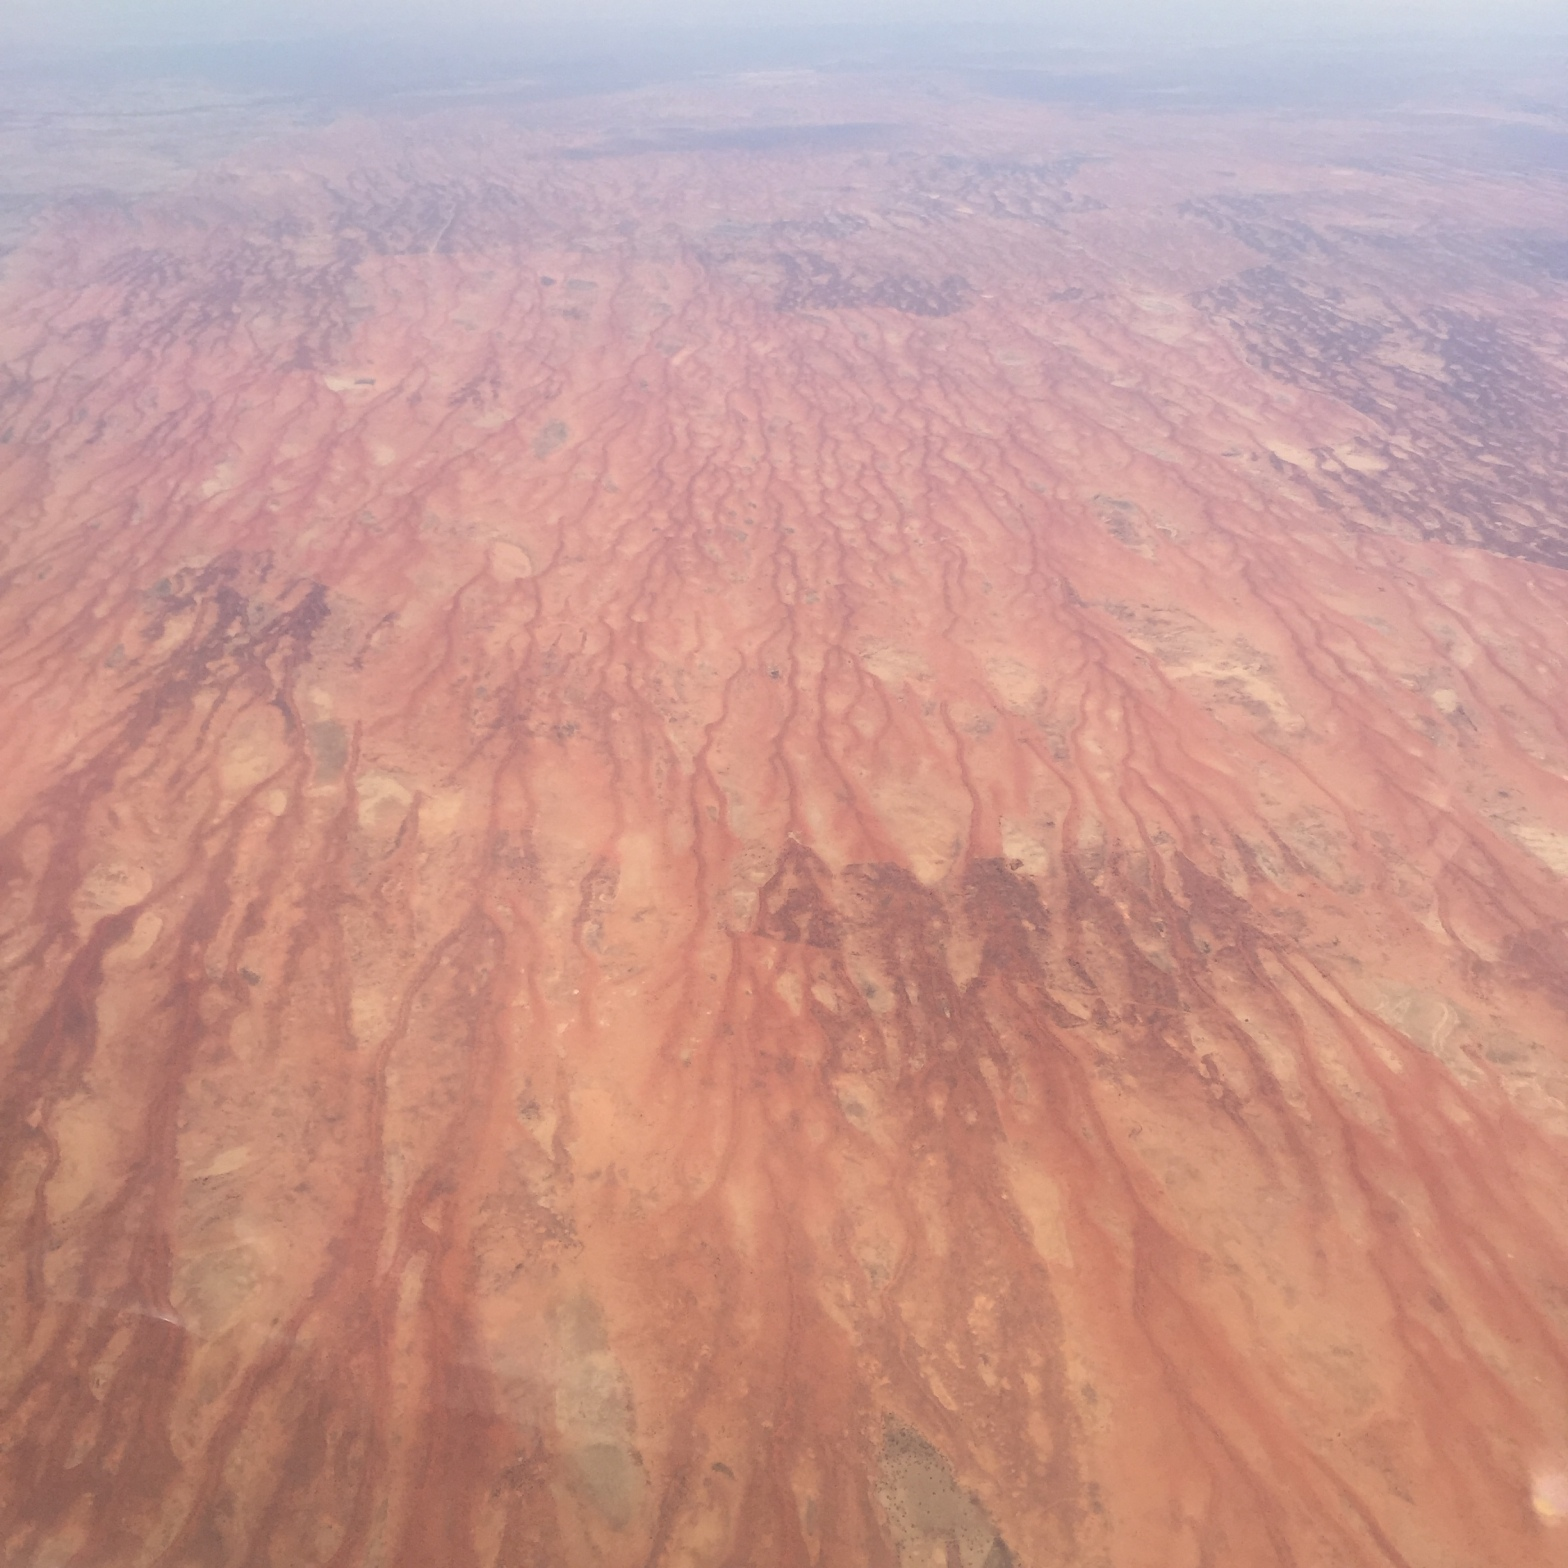 Flying over the Northern Territory in Australia